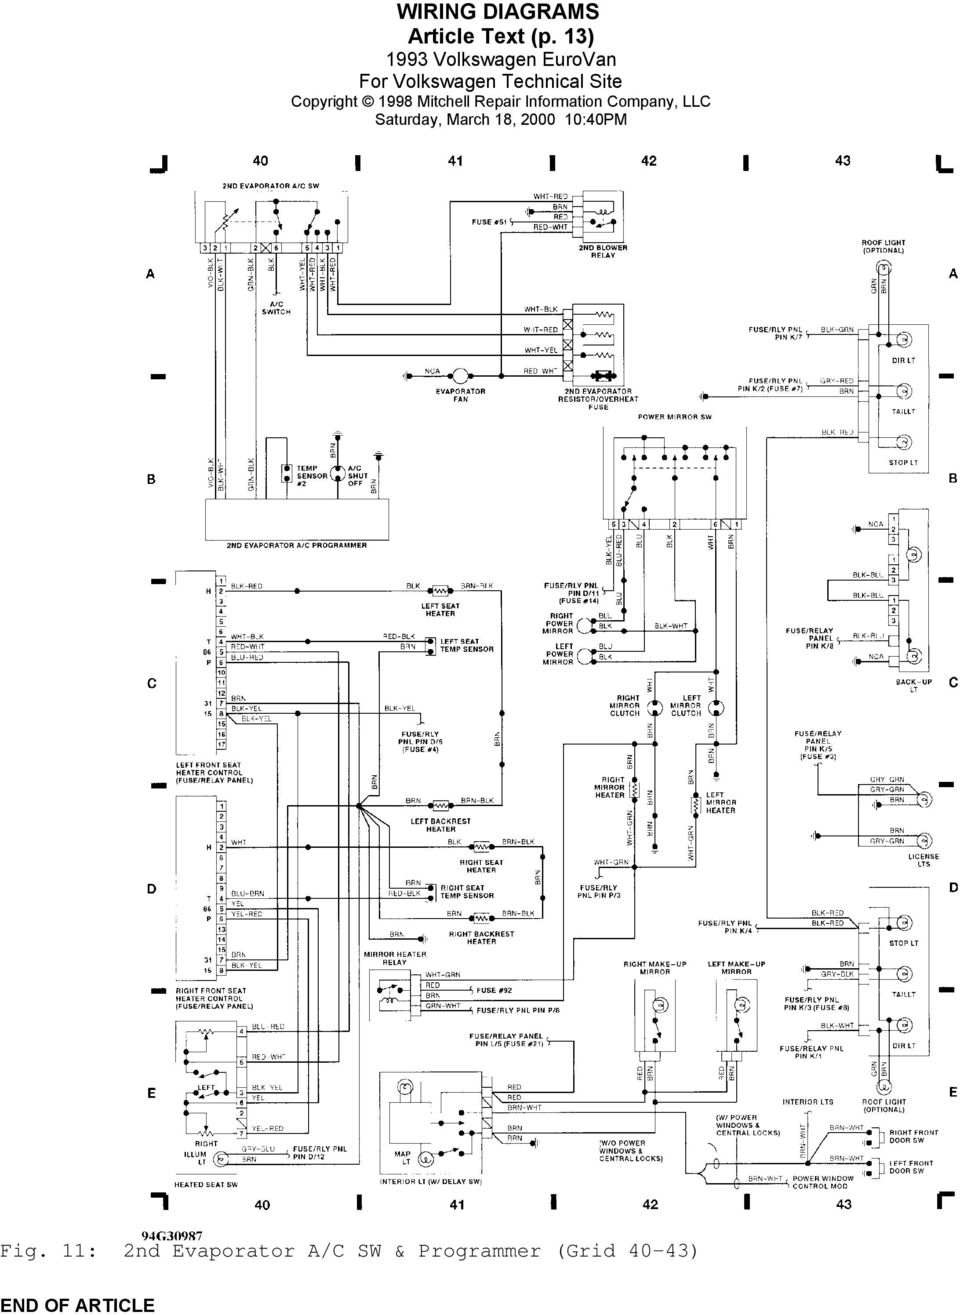 29+ 95 Vw Eurovan Wiring Diagram